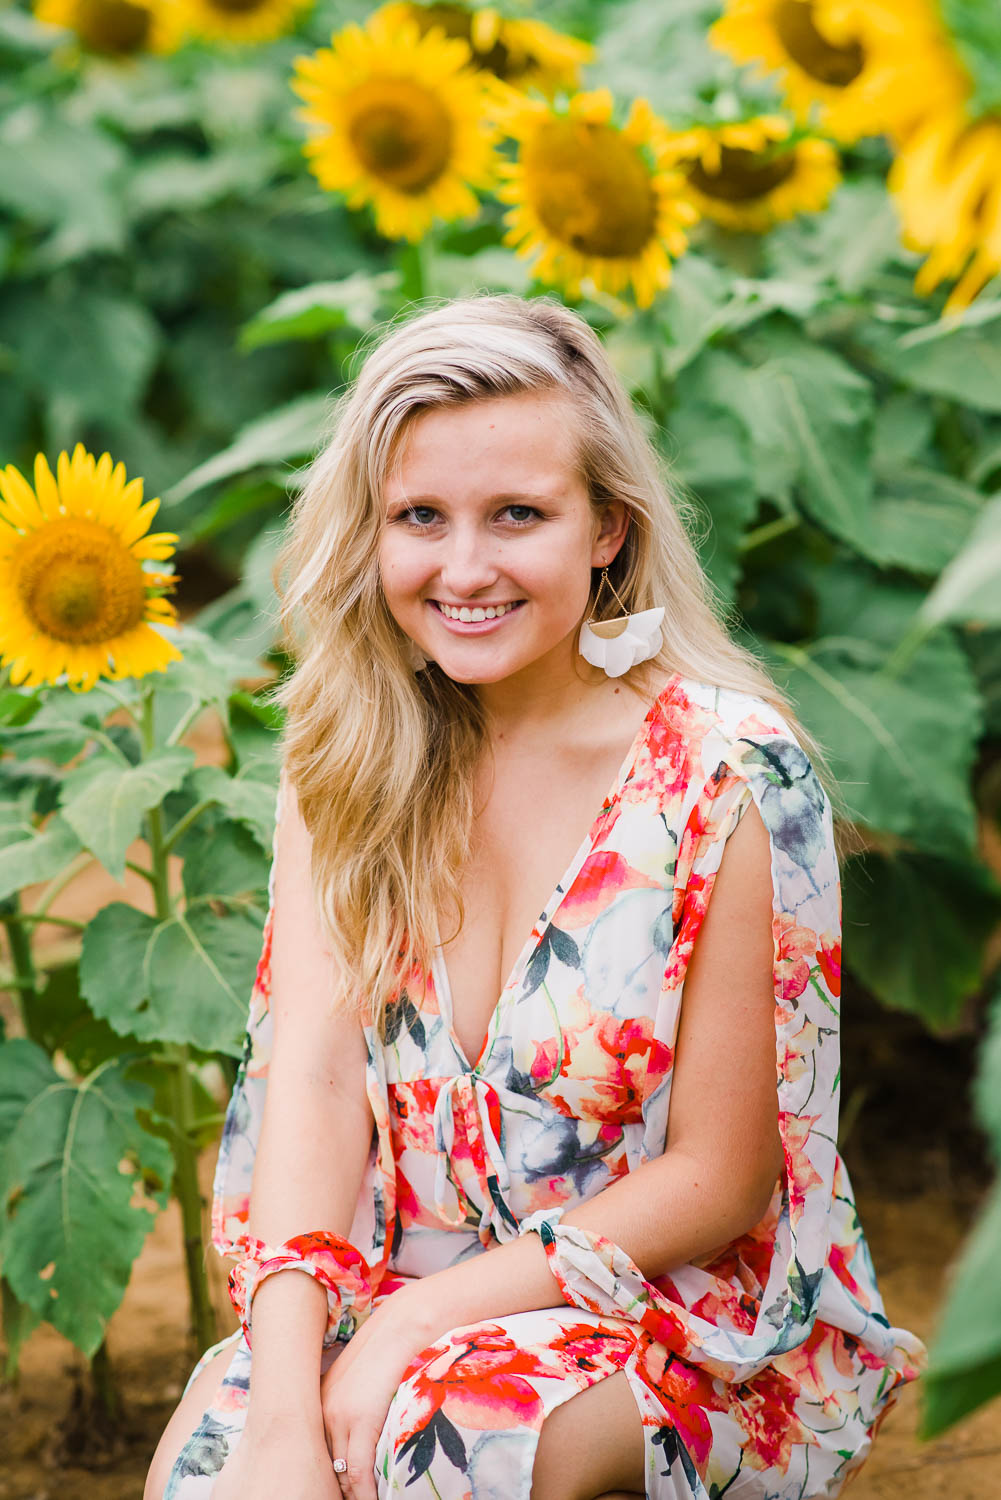 blonde girl sitting in among sunflowers in Ooltewah Tn